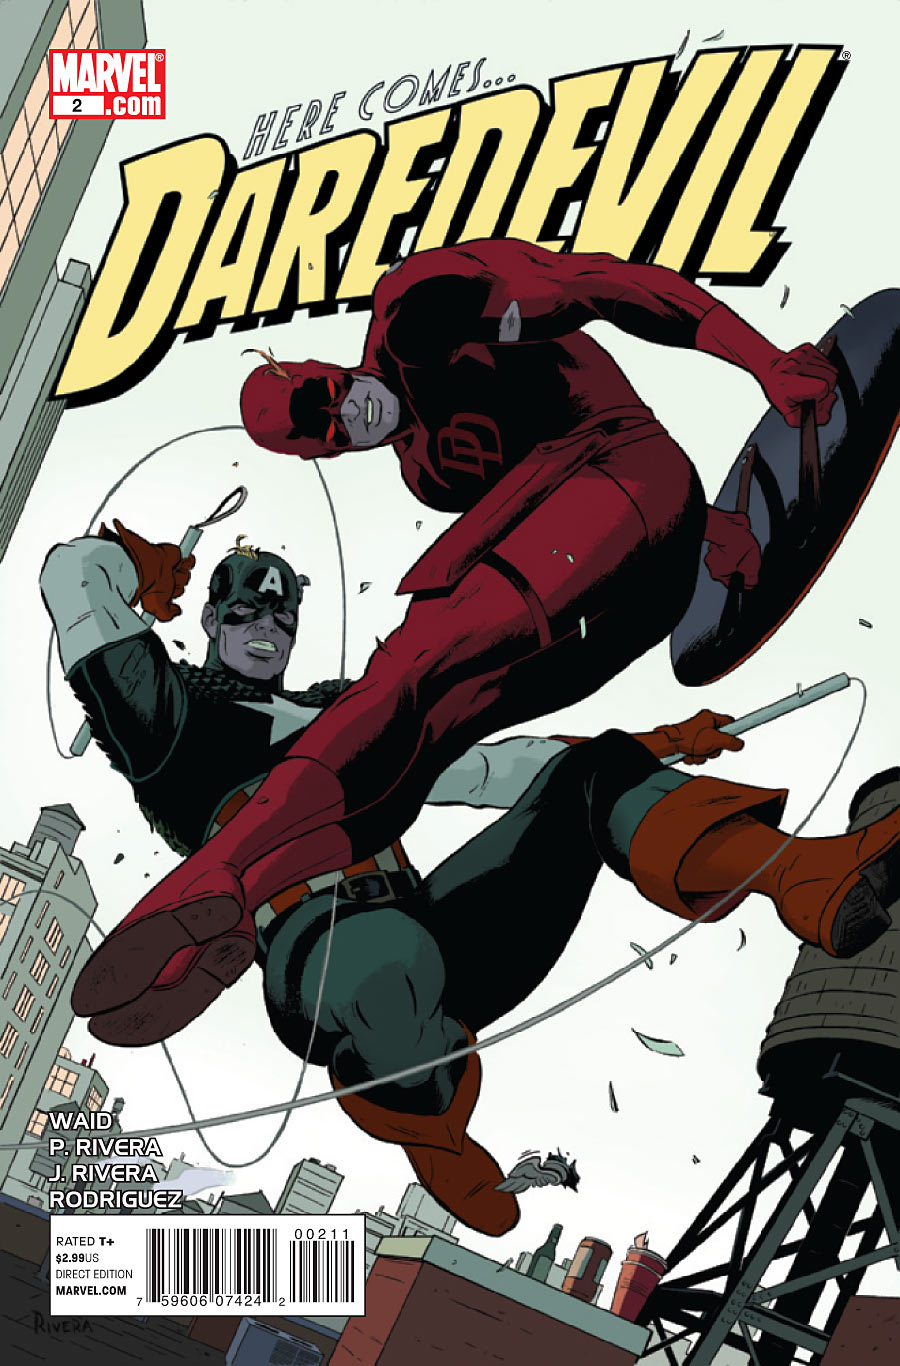 paolo rivera daredevil cover - photo #15